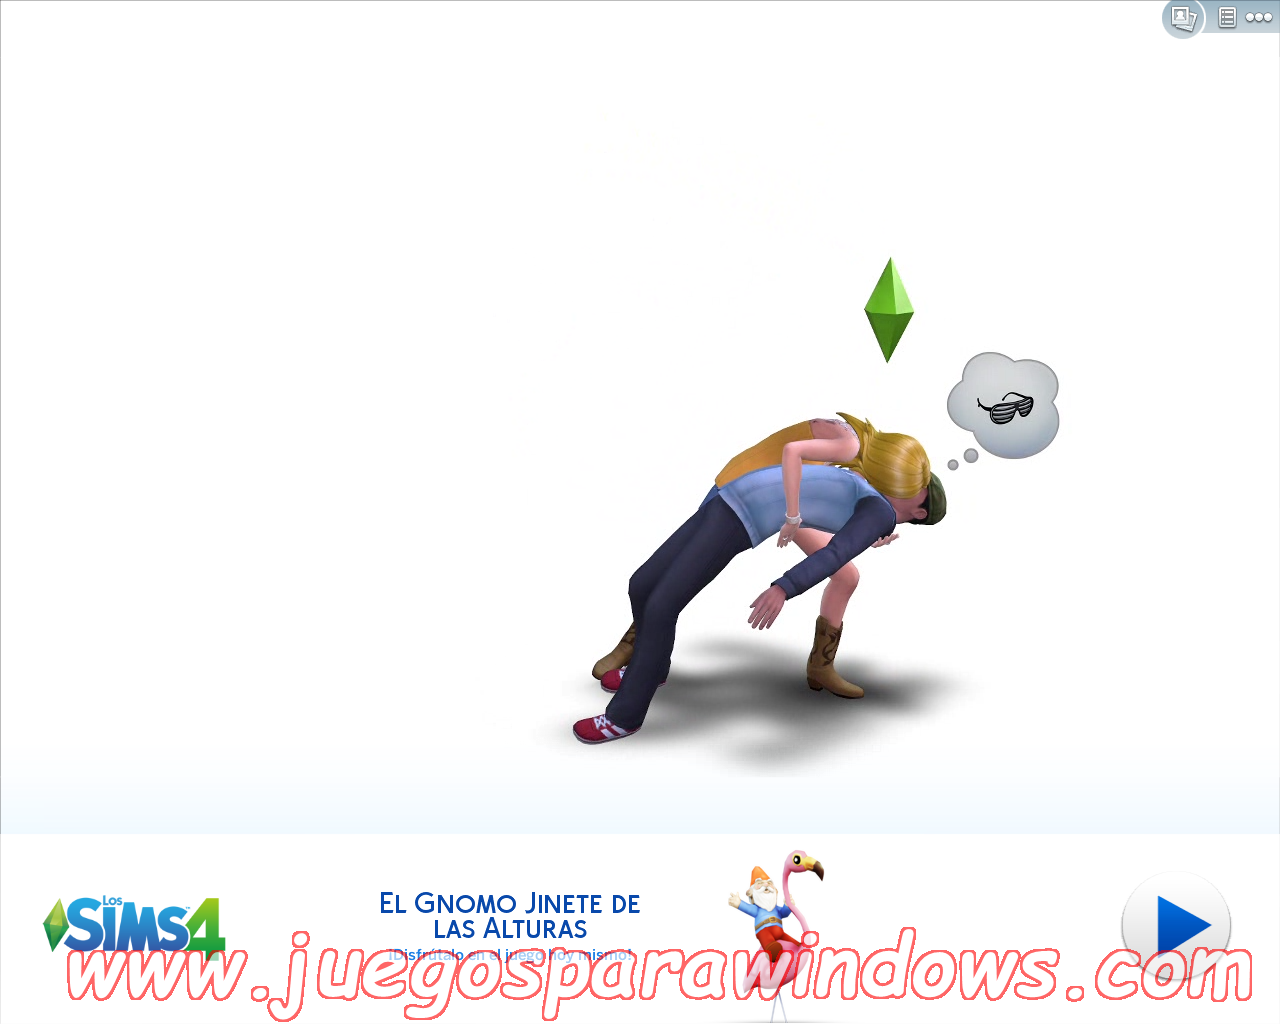 Los Sims 4 Digital Deluxe Edition ESPAÑOL PC Full + Update v1.4.83.1010 Incl DLC (RELOADED) 5